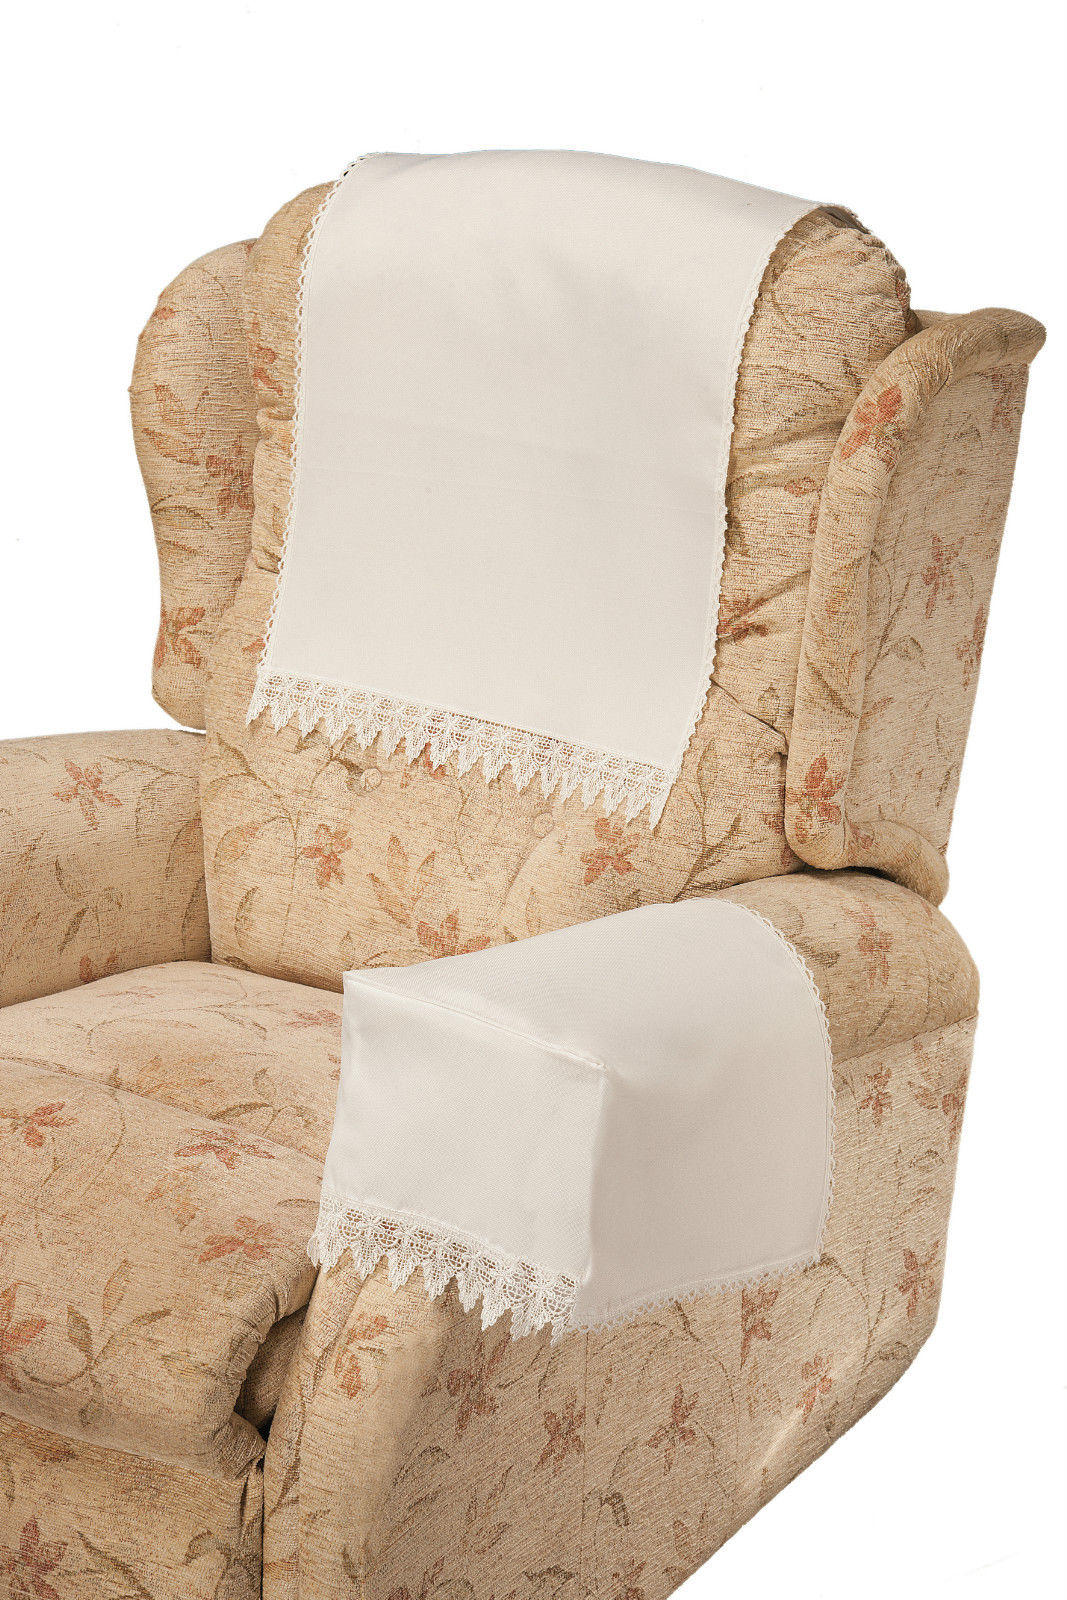 Comet White Chair Arm Covers By Easycare Tablecloths